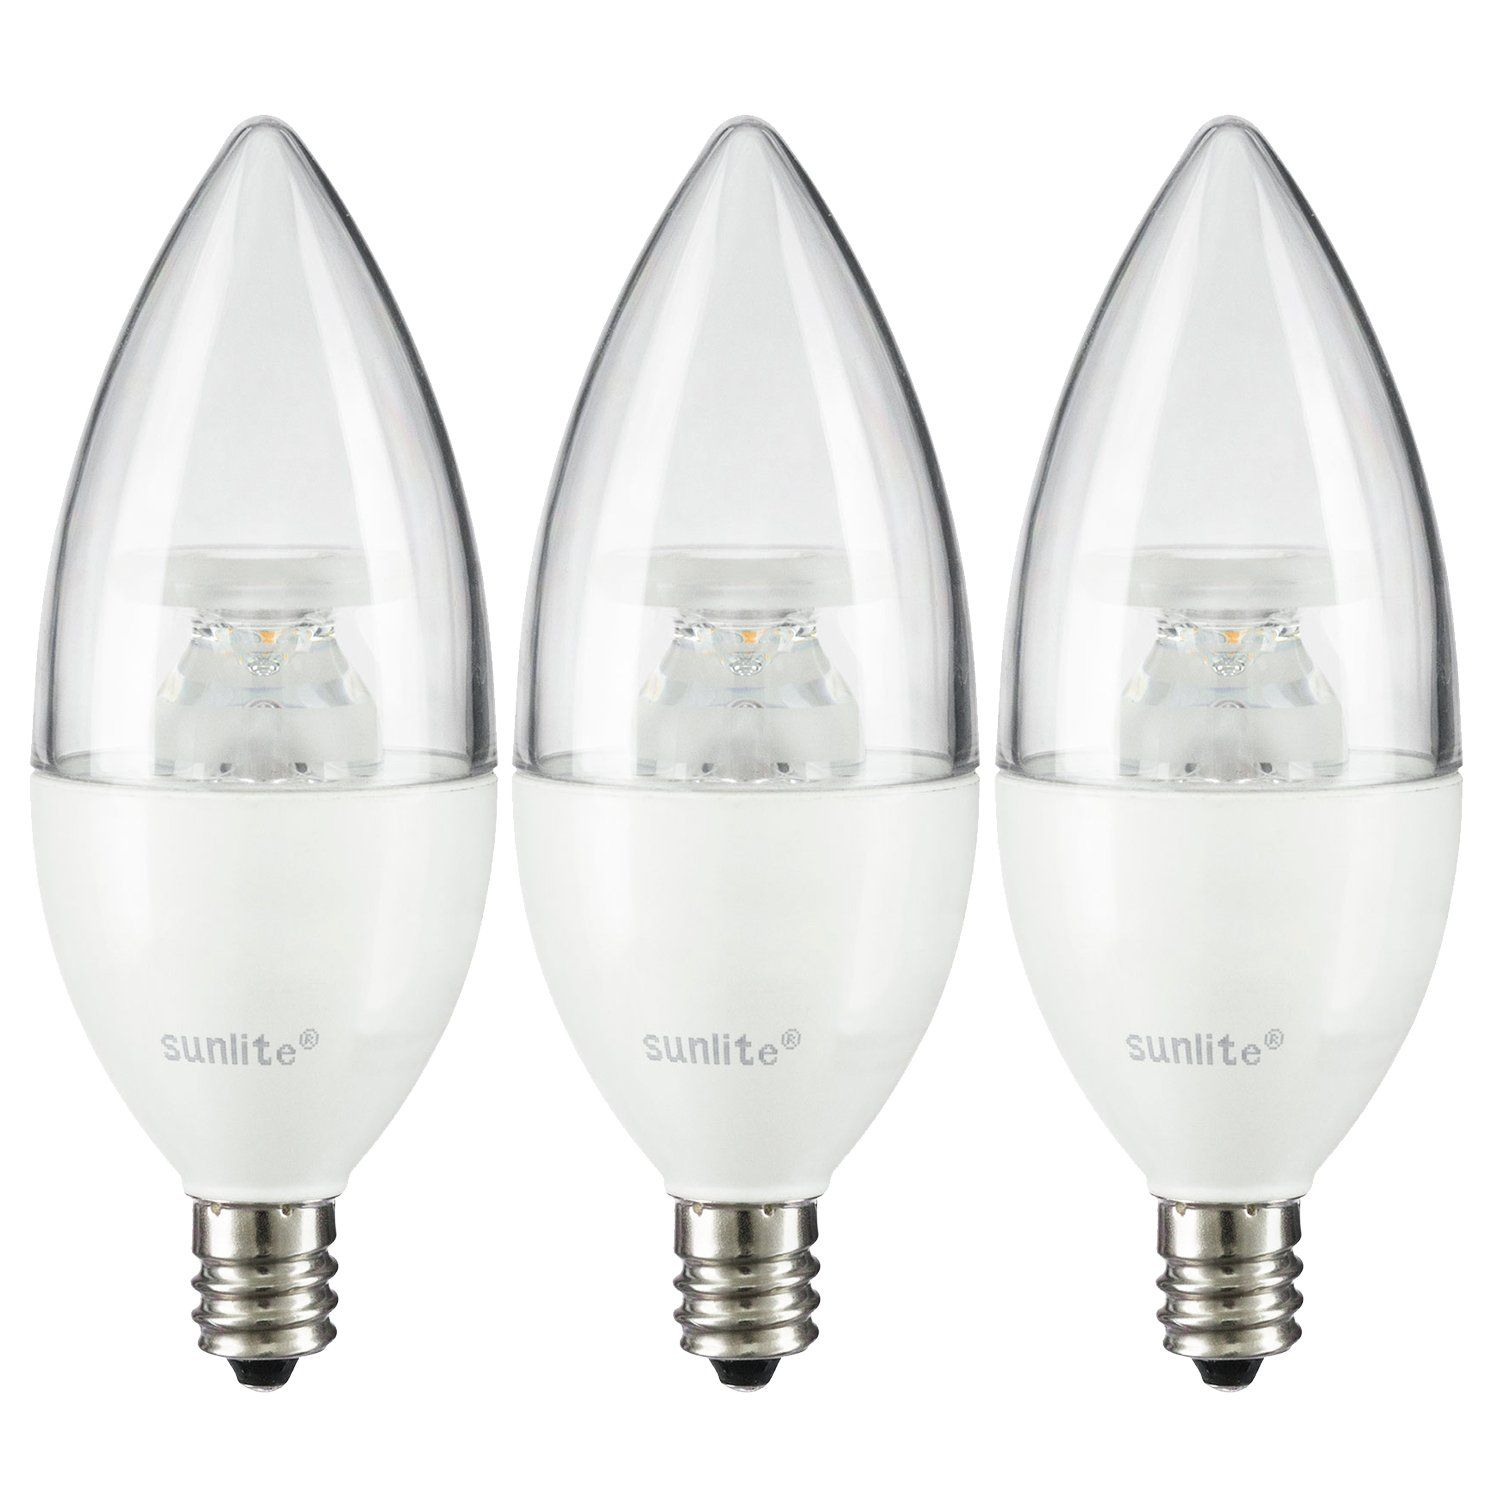 LED E12 120V AC Eq. to 40W Halogen Dimmable UL Approved